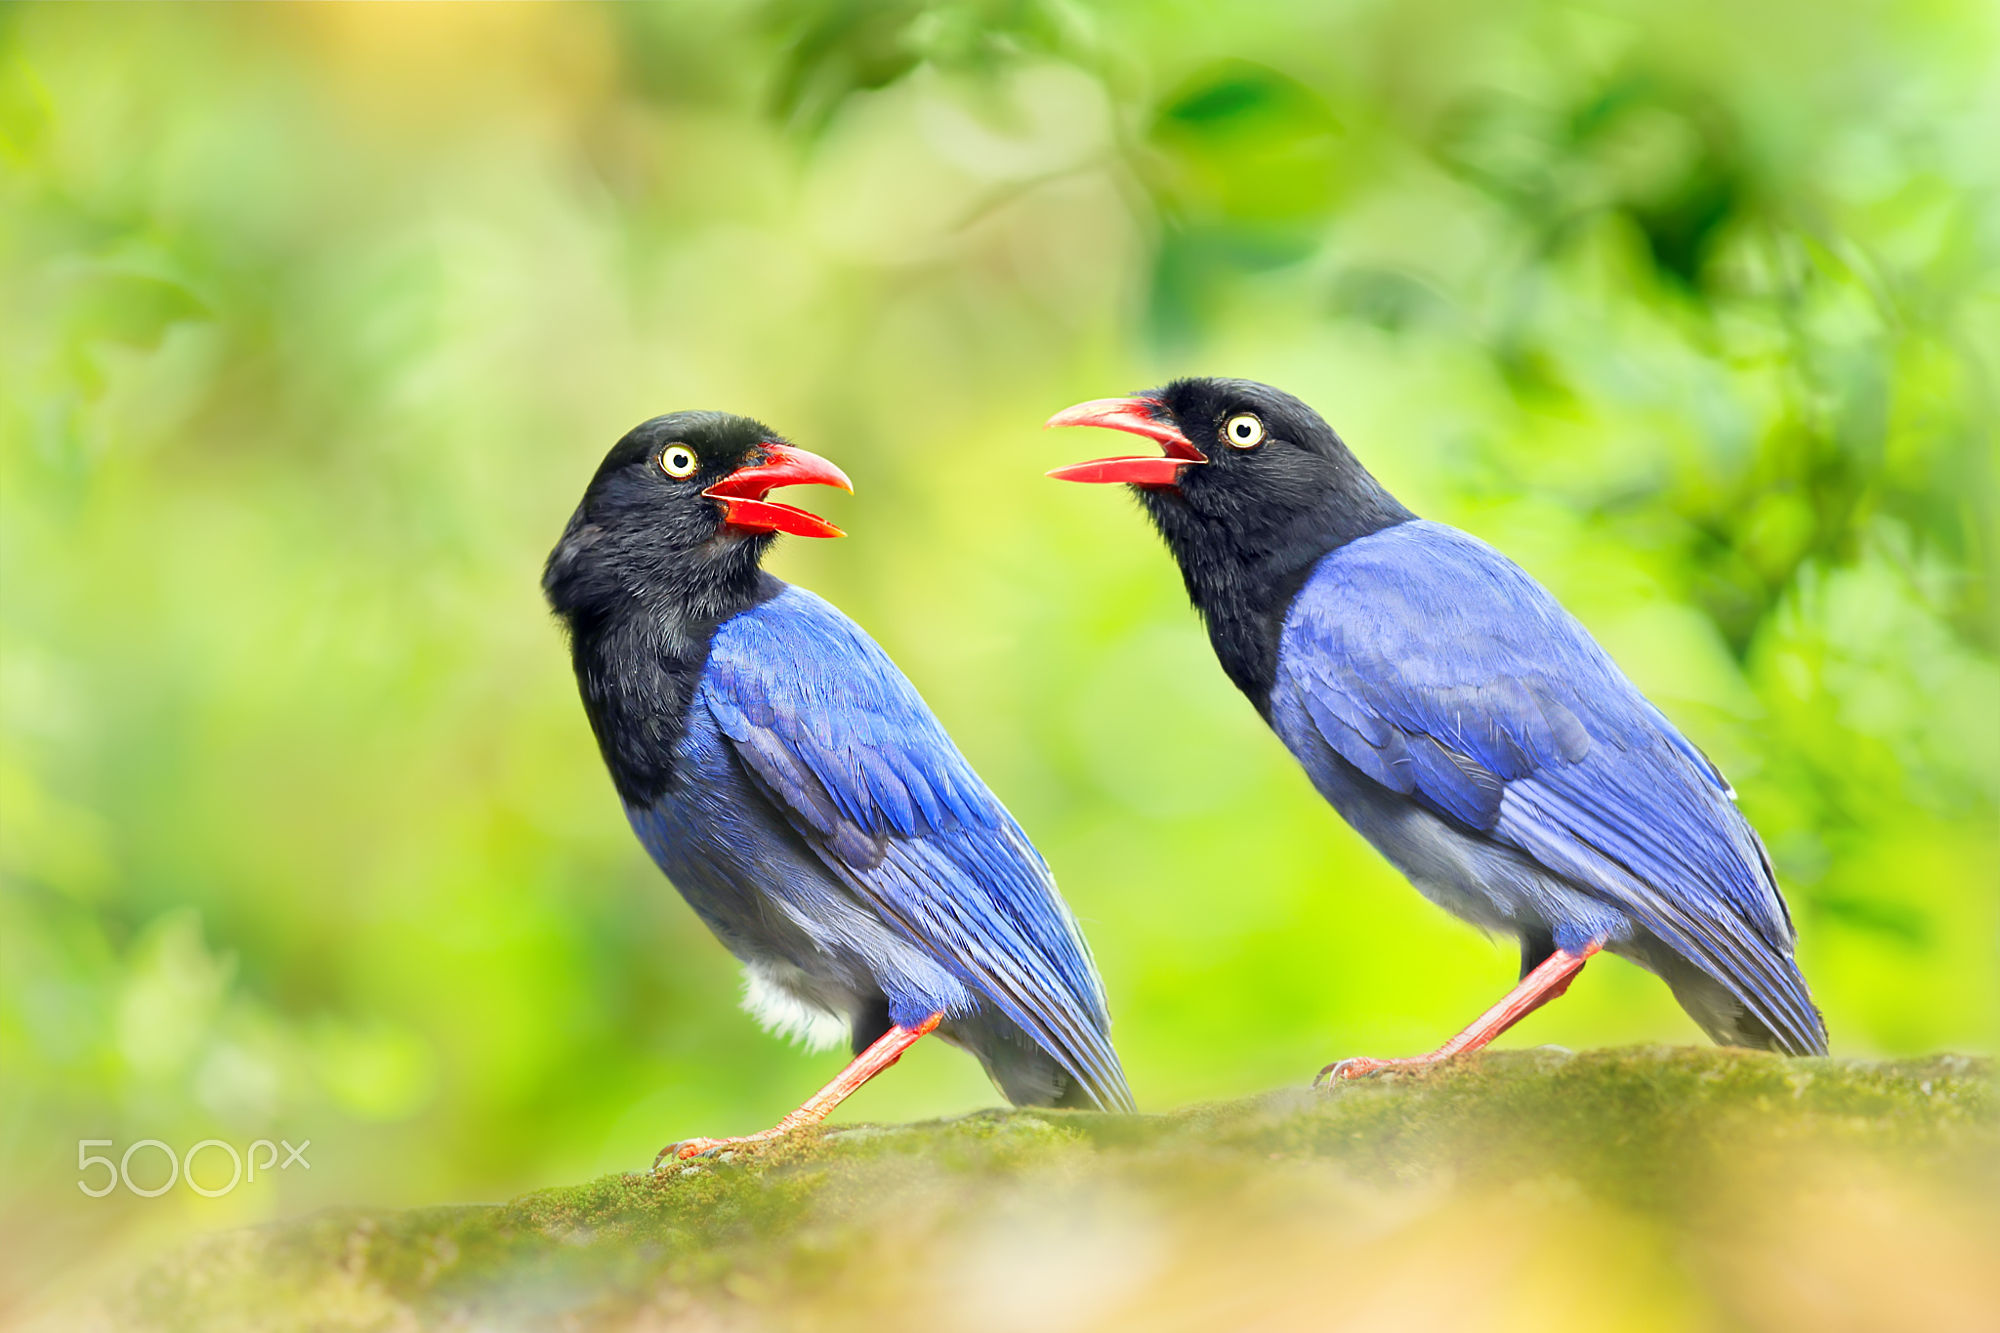 Taiwan Blue Magpie clipart #4, Download drawings